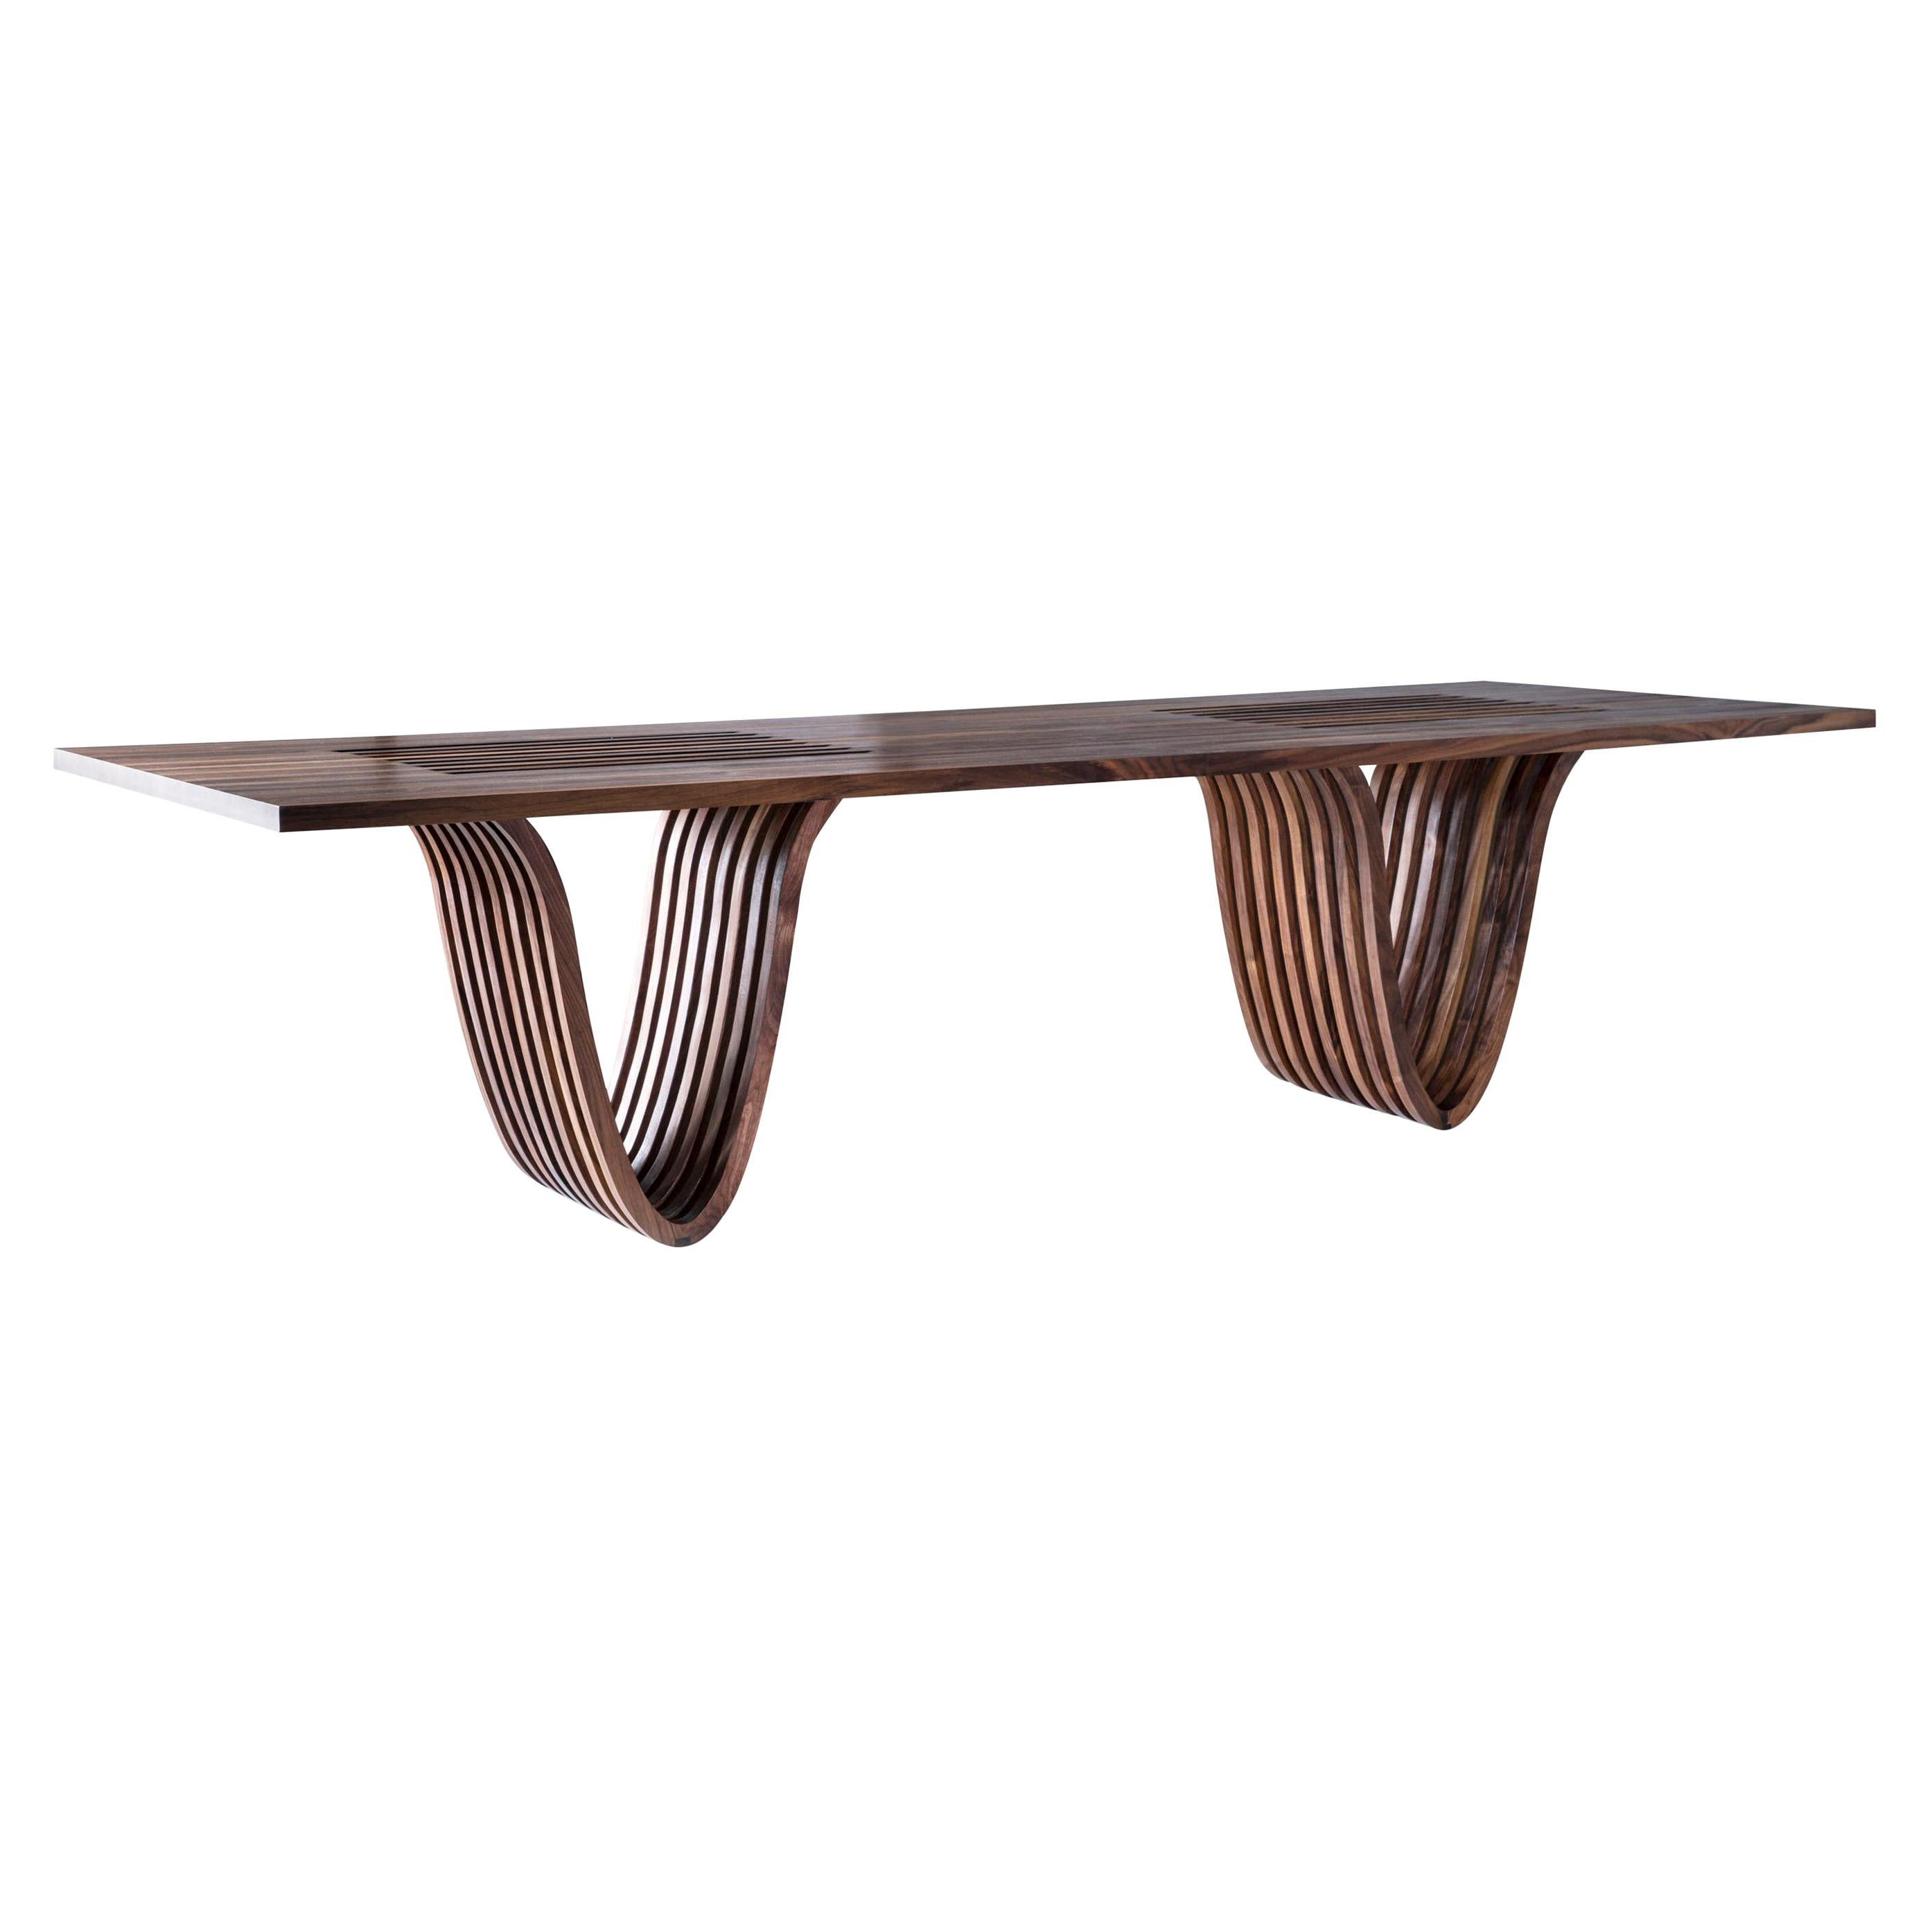 """""""Dining Table""""from the Catenary Collection by Studio Craft Artist Adam Zimmerman"""